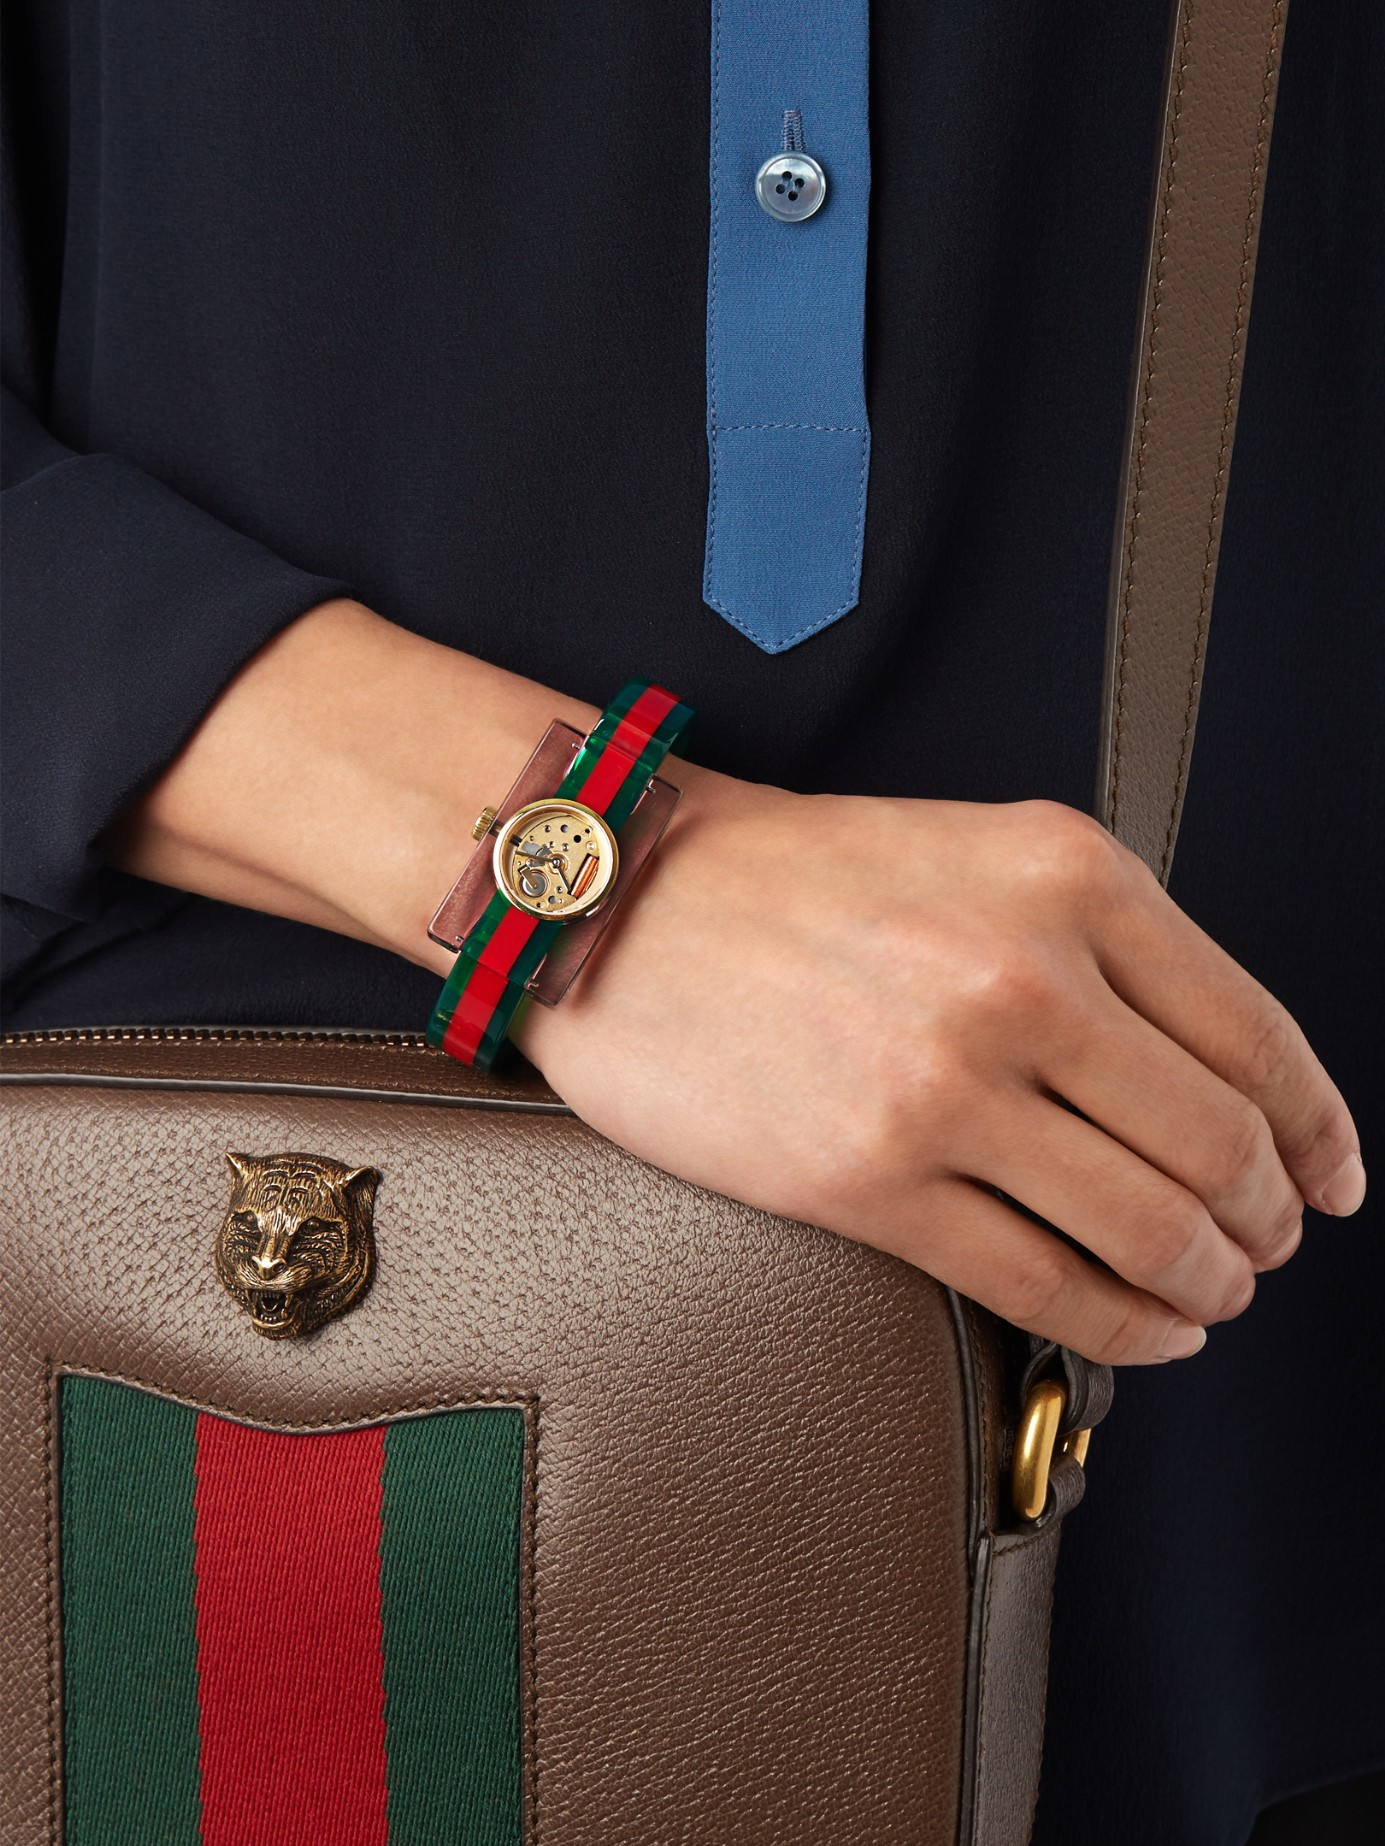 4939646ac97 Replica Gucci Watches Wholesale Buying Guide 2018 - MyBizShare